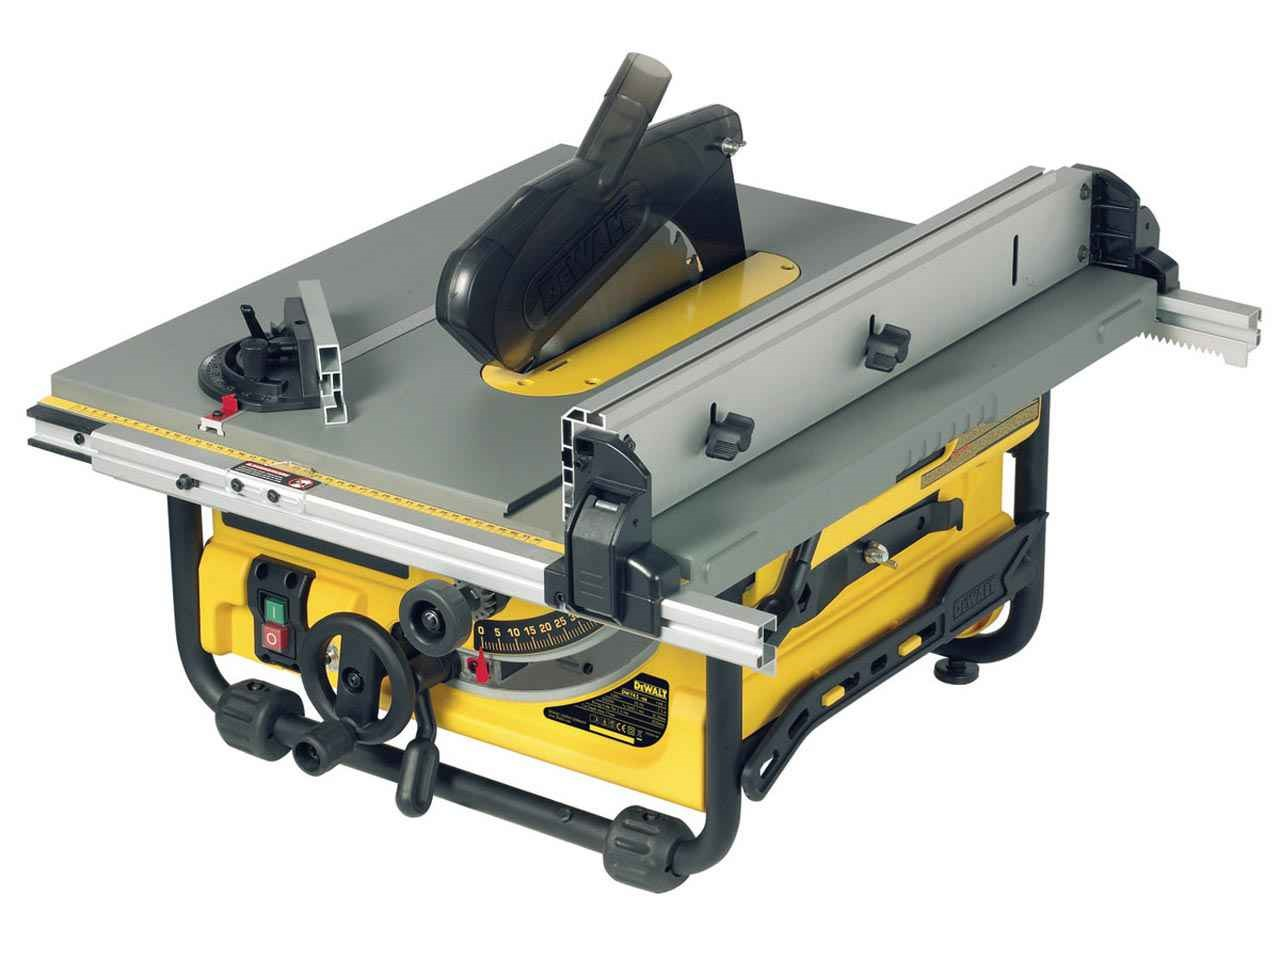 Dewalt dw745 230v portable site table saw greentooth